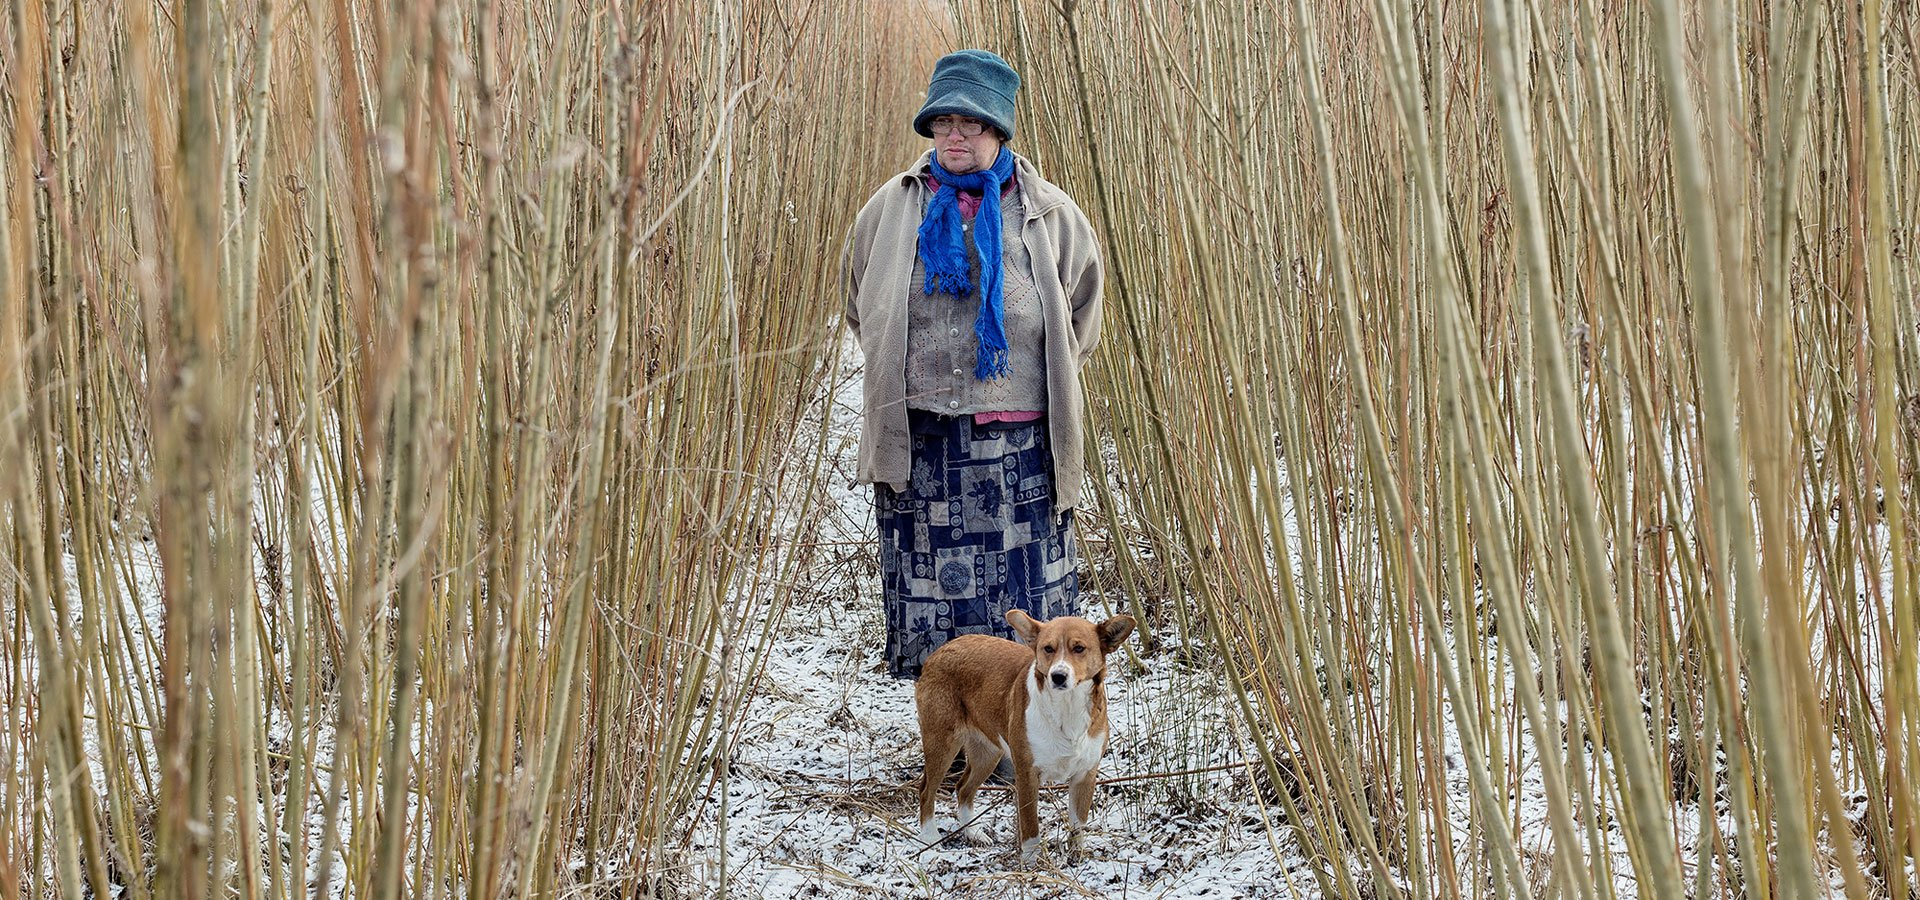 In rural Poland, a mother cuts her own path